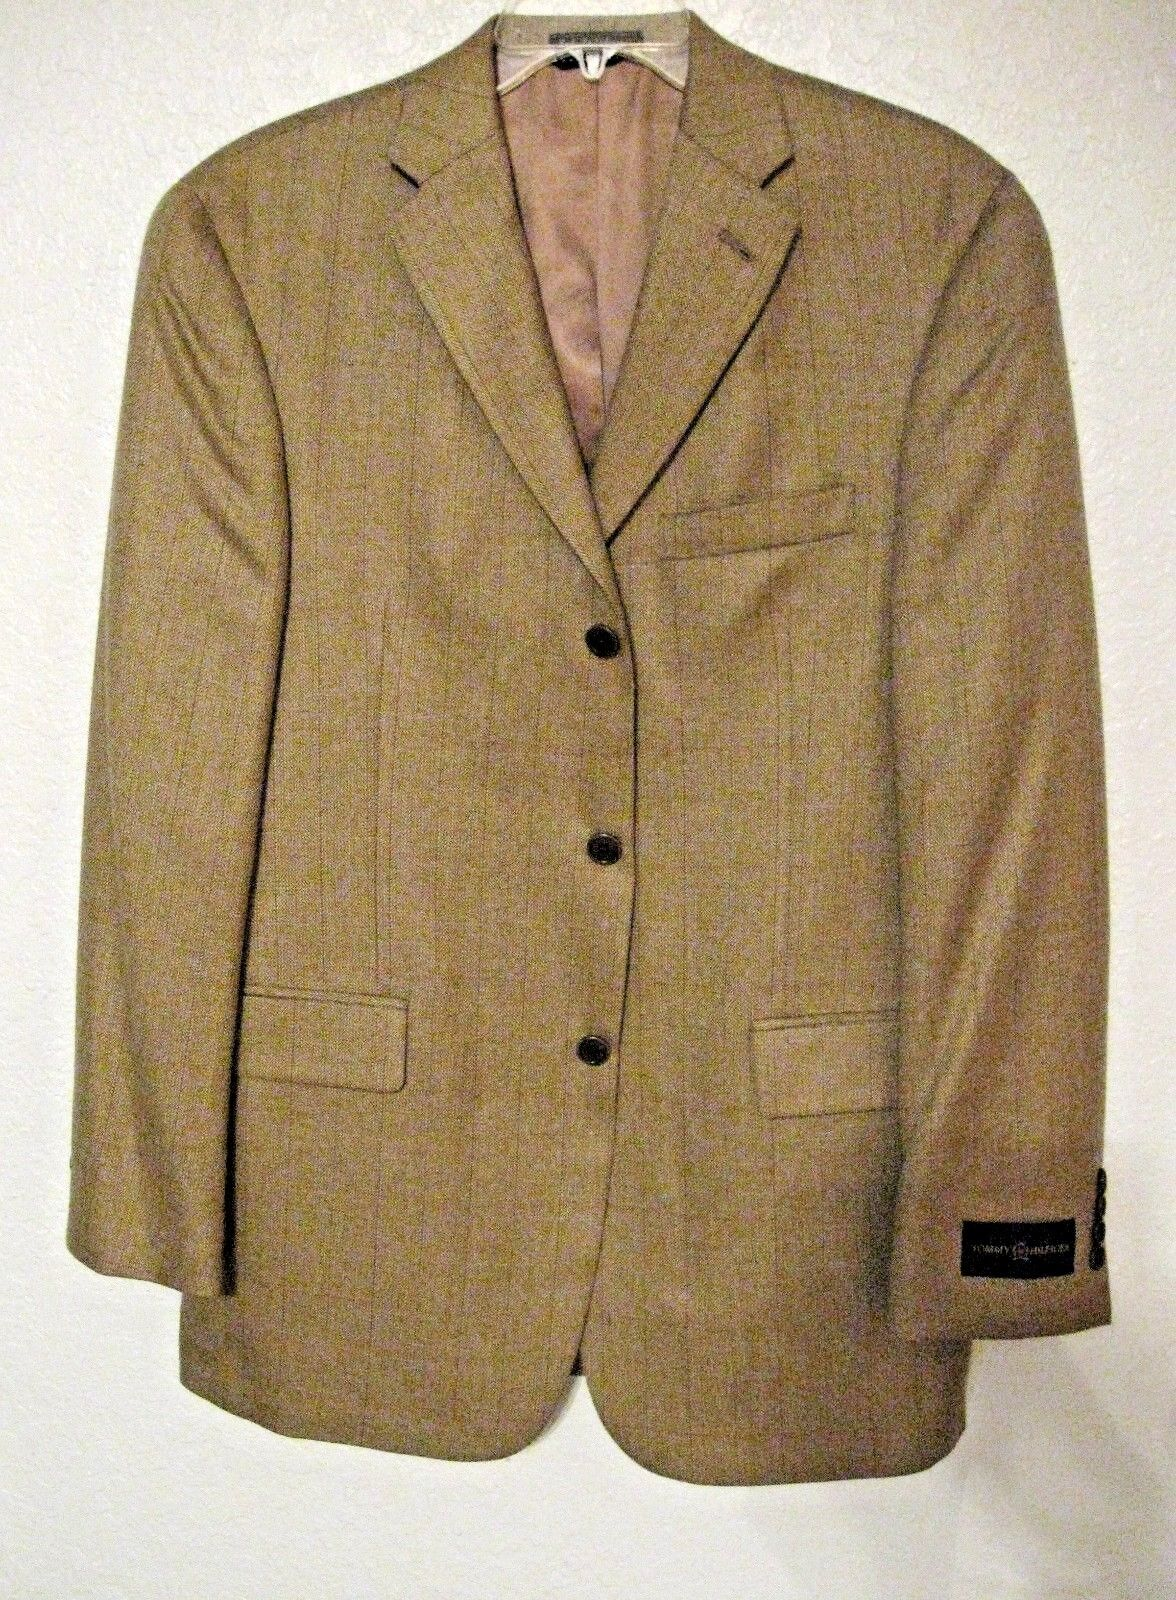 Tommy Hilfiger Sports Coat Größe 38 Reg. Light Braun and Tan MSRP 325 NWT  7560